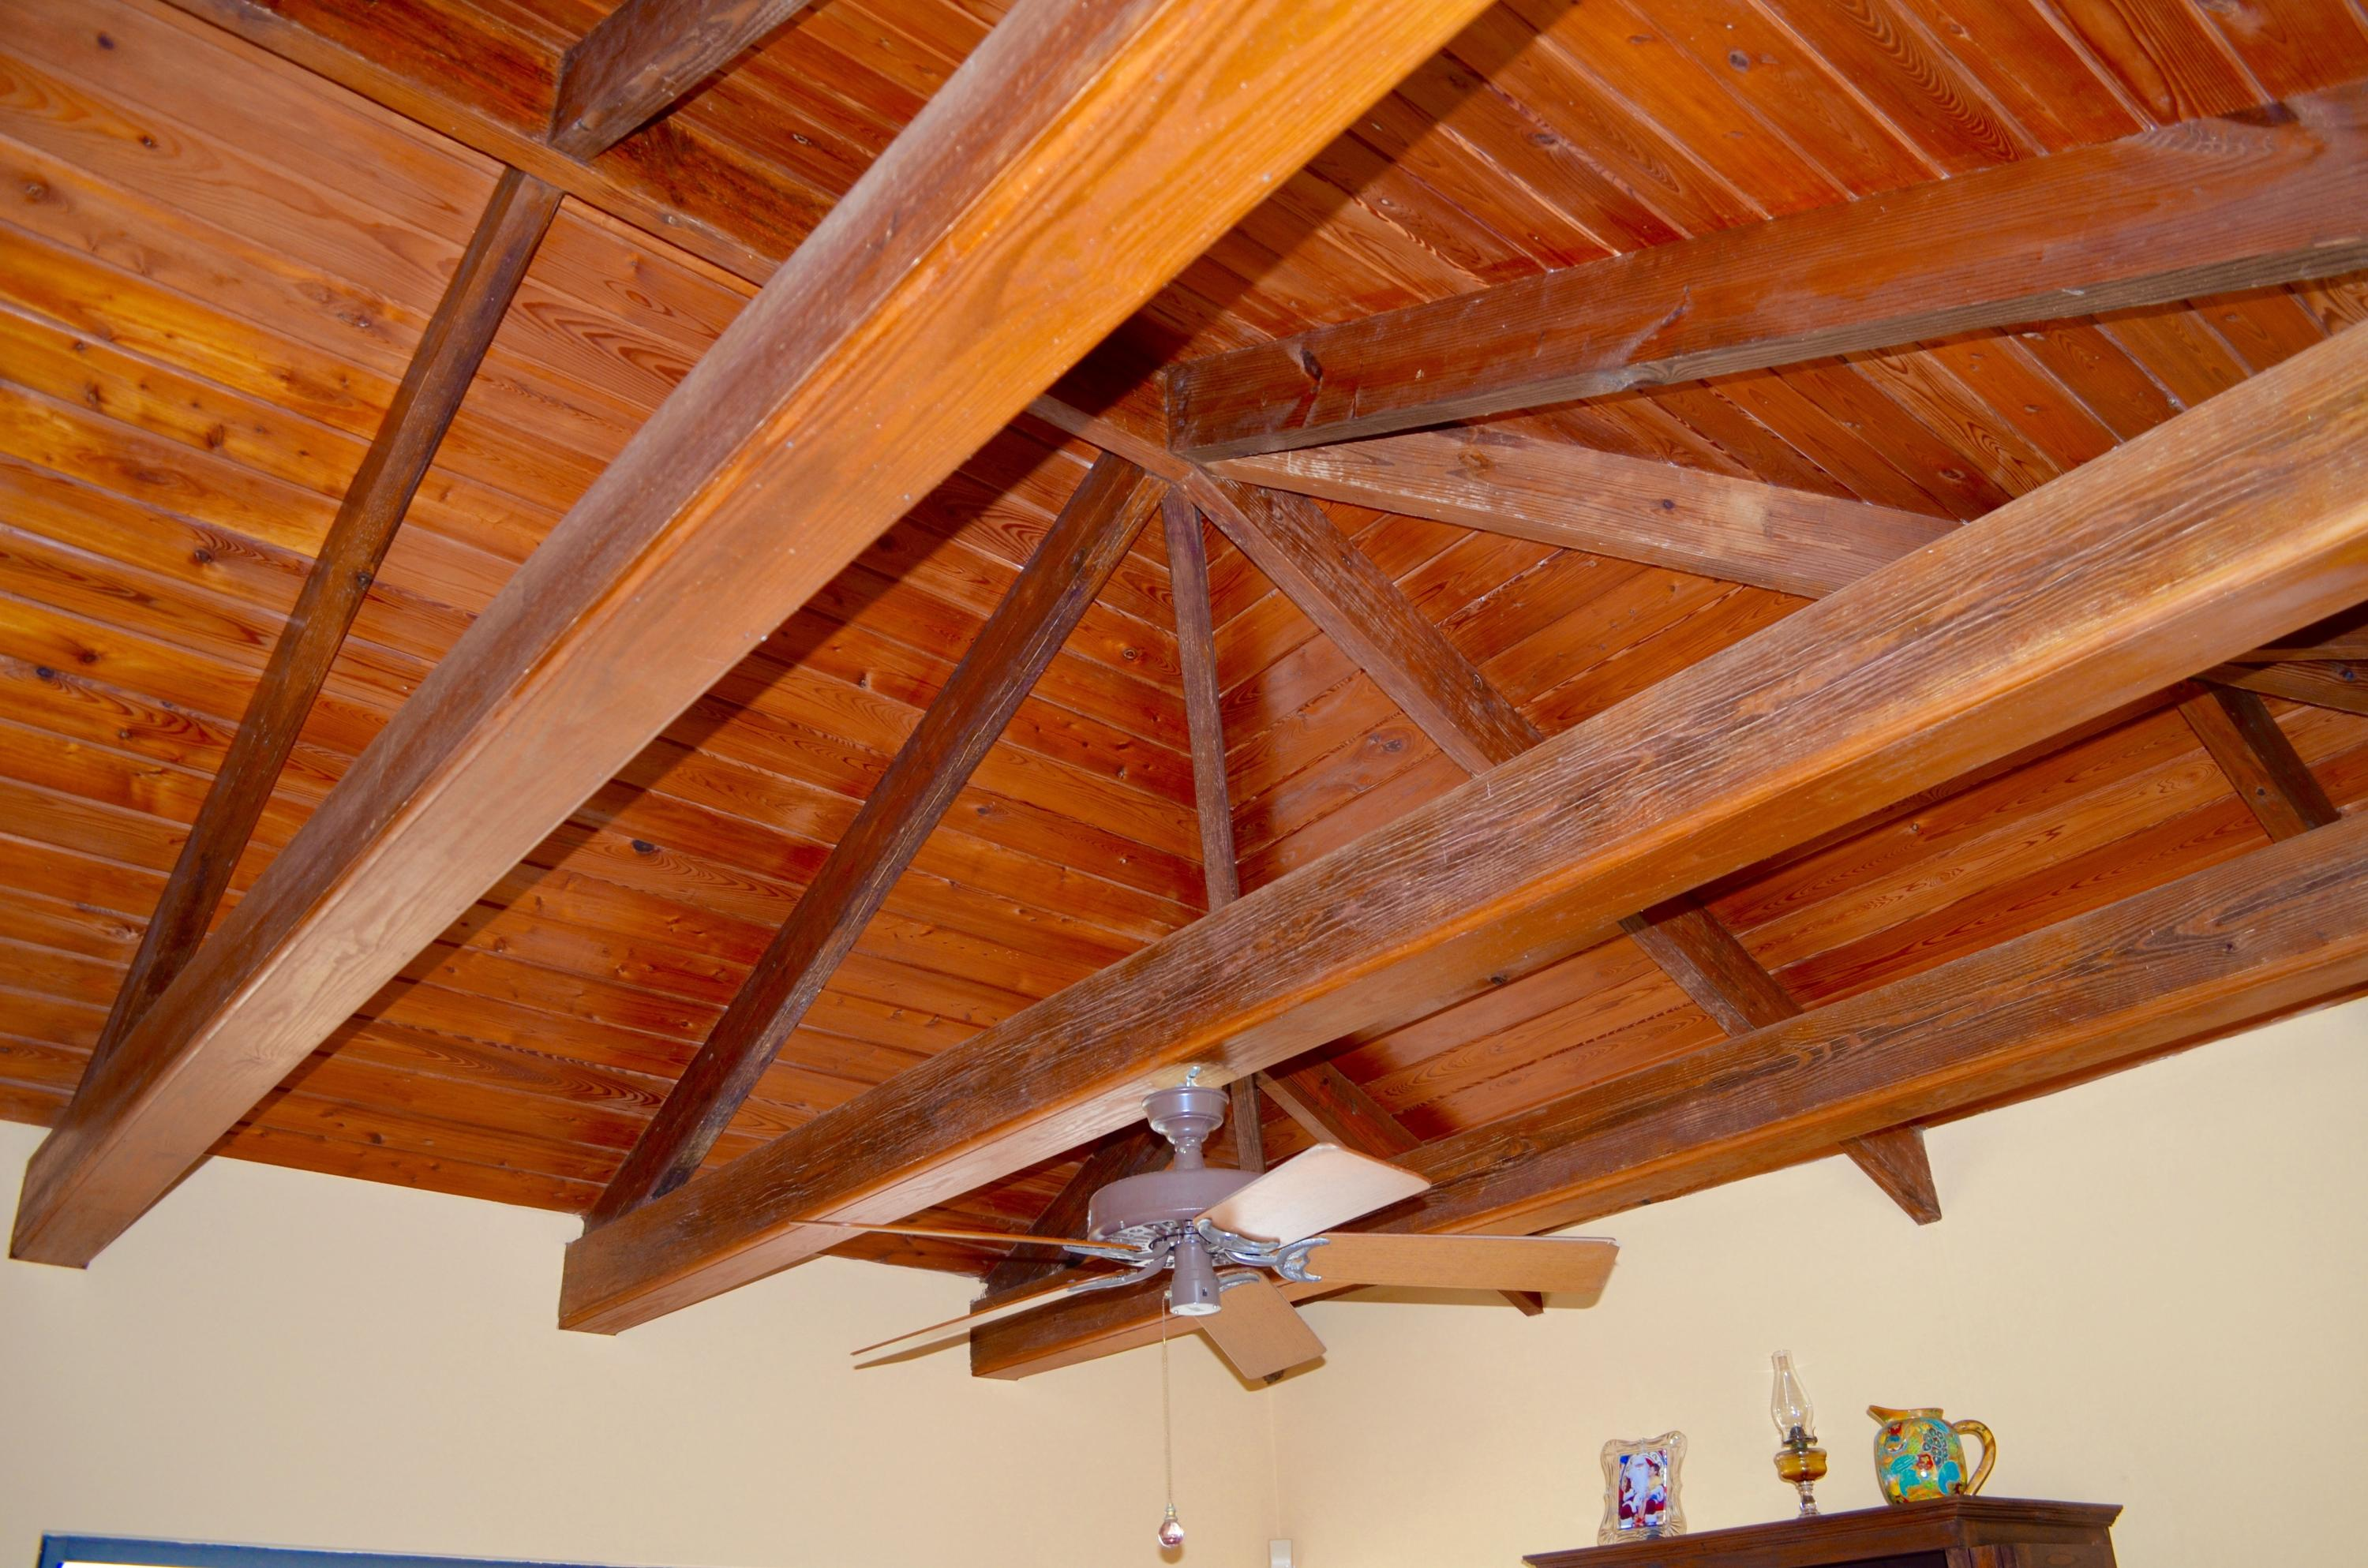 Vaulted ceilings built to last